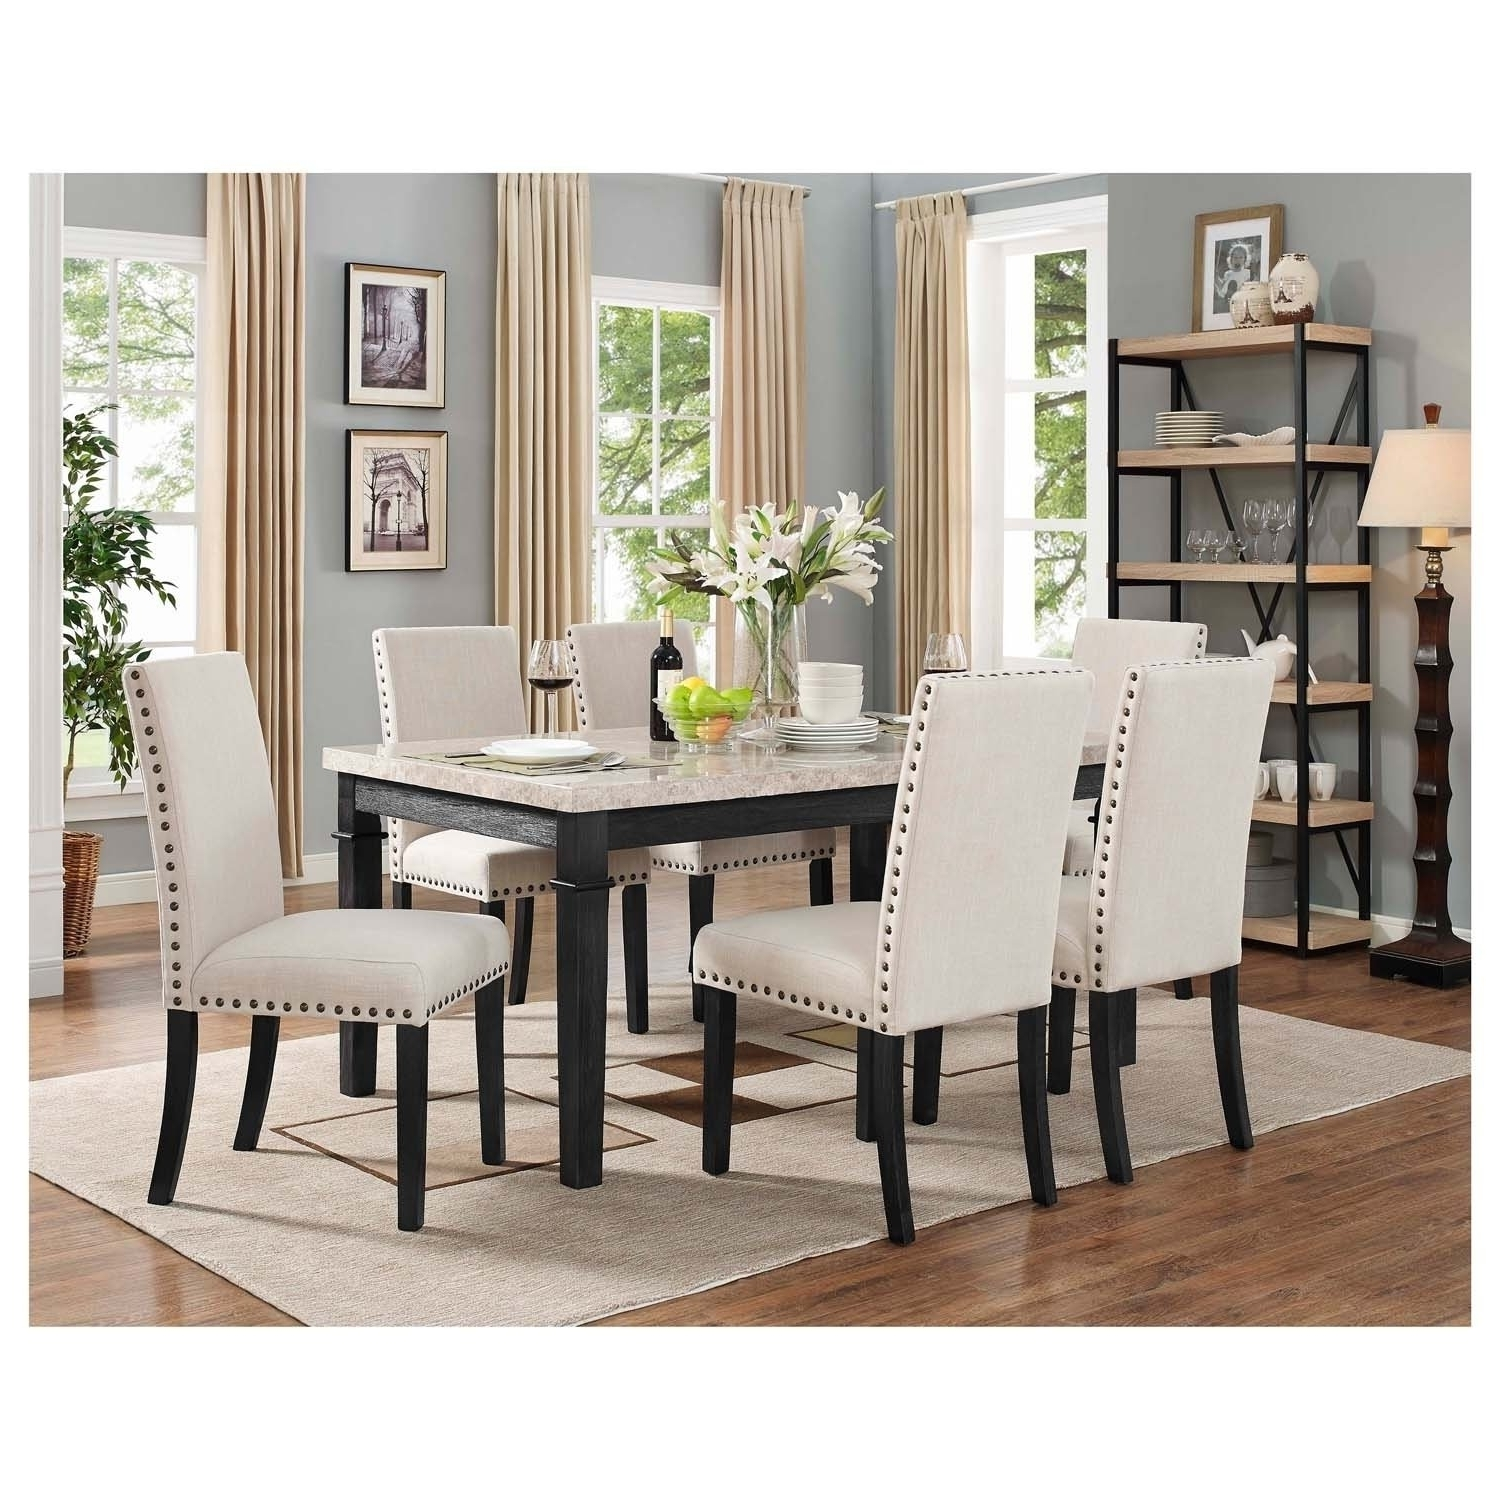 Shop Picket House Furnishings Bradley 7Pc Dining Set Table & 6 In Well Known Gavin 6 Piece Dining Sets With Clint Side Chairs (View 19 of 25)